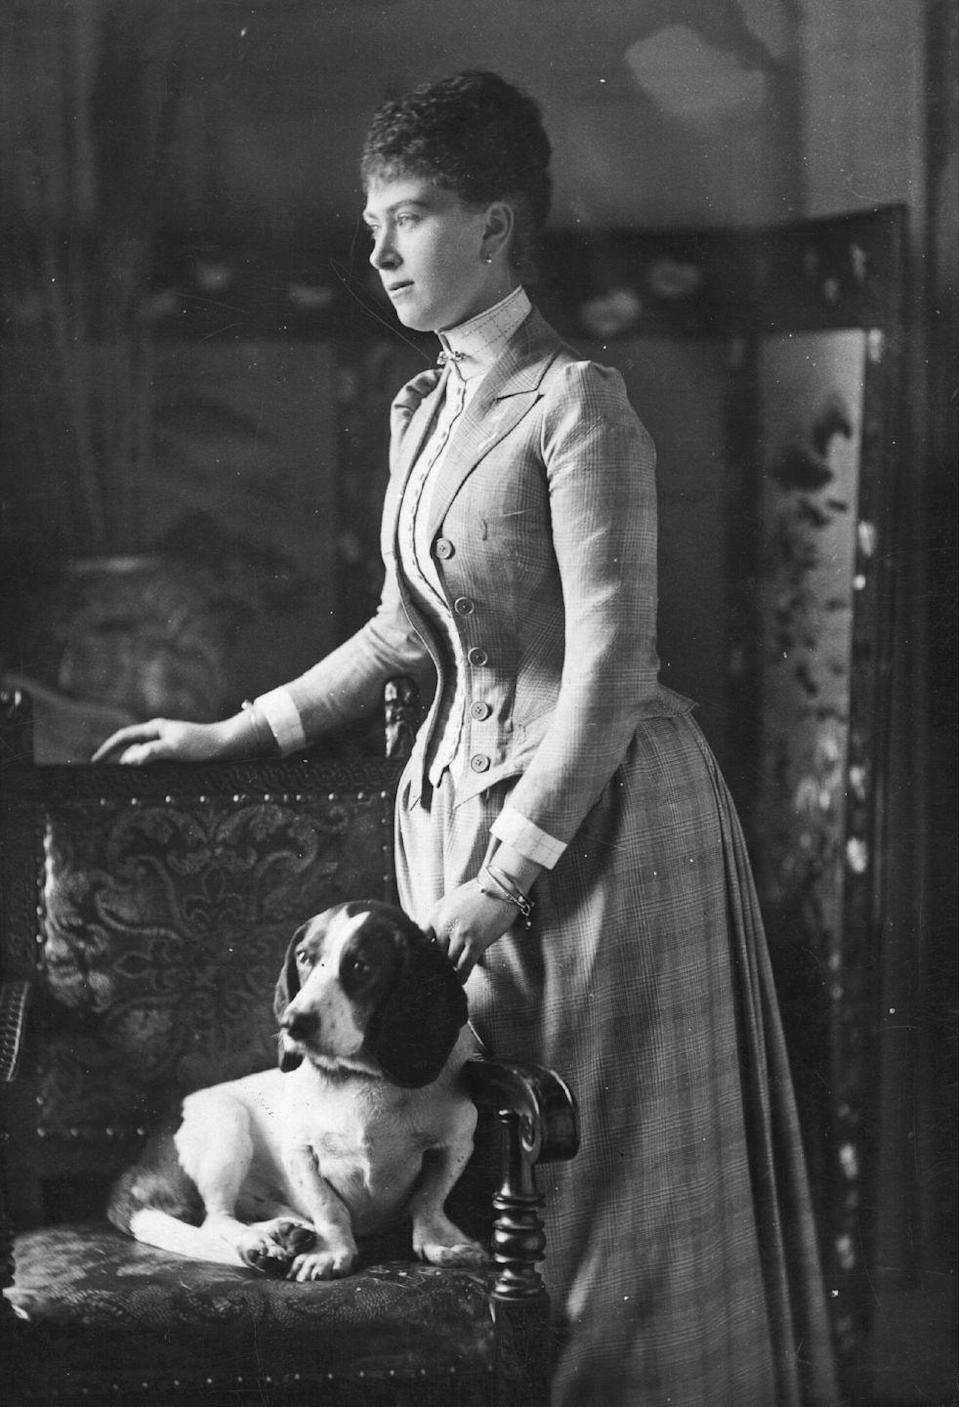 <p>Mary of Teck—the future Queen Mary—was photographed with a dog in the late 19th century. </p>